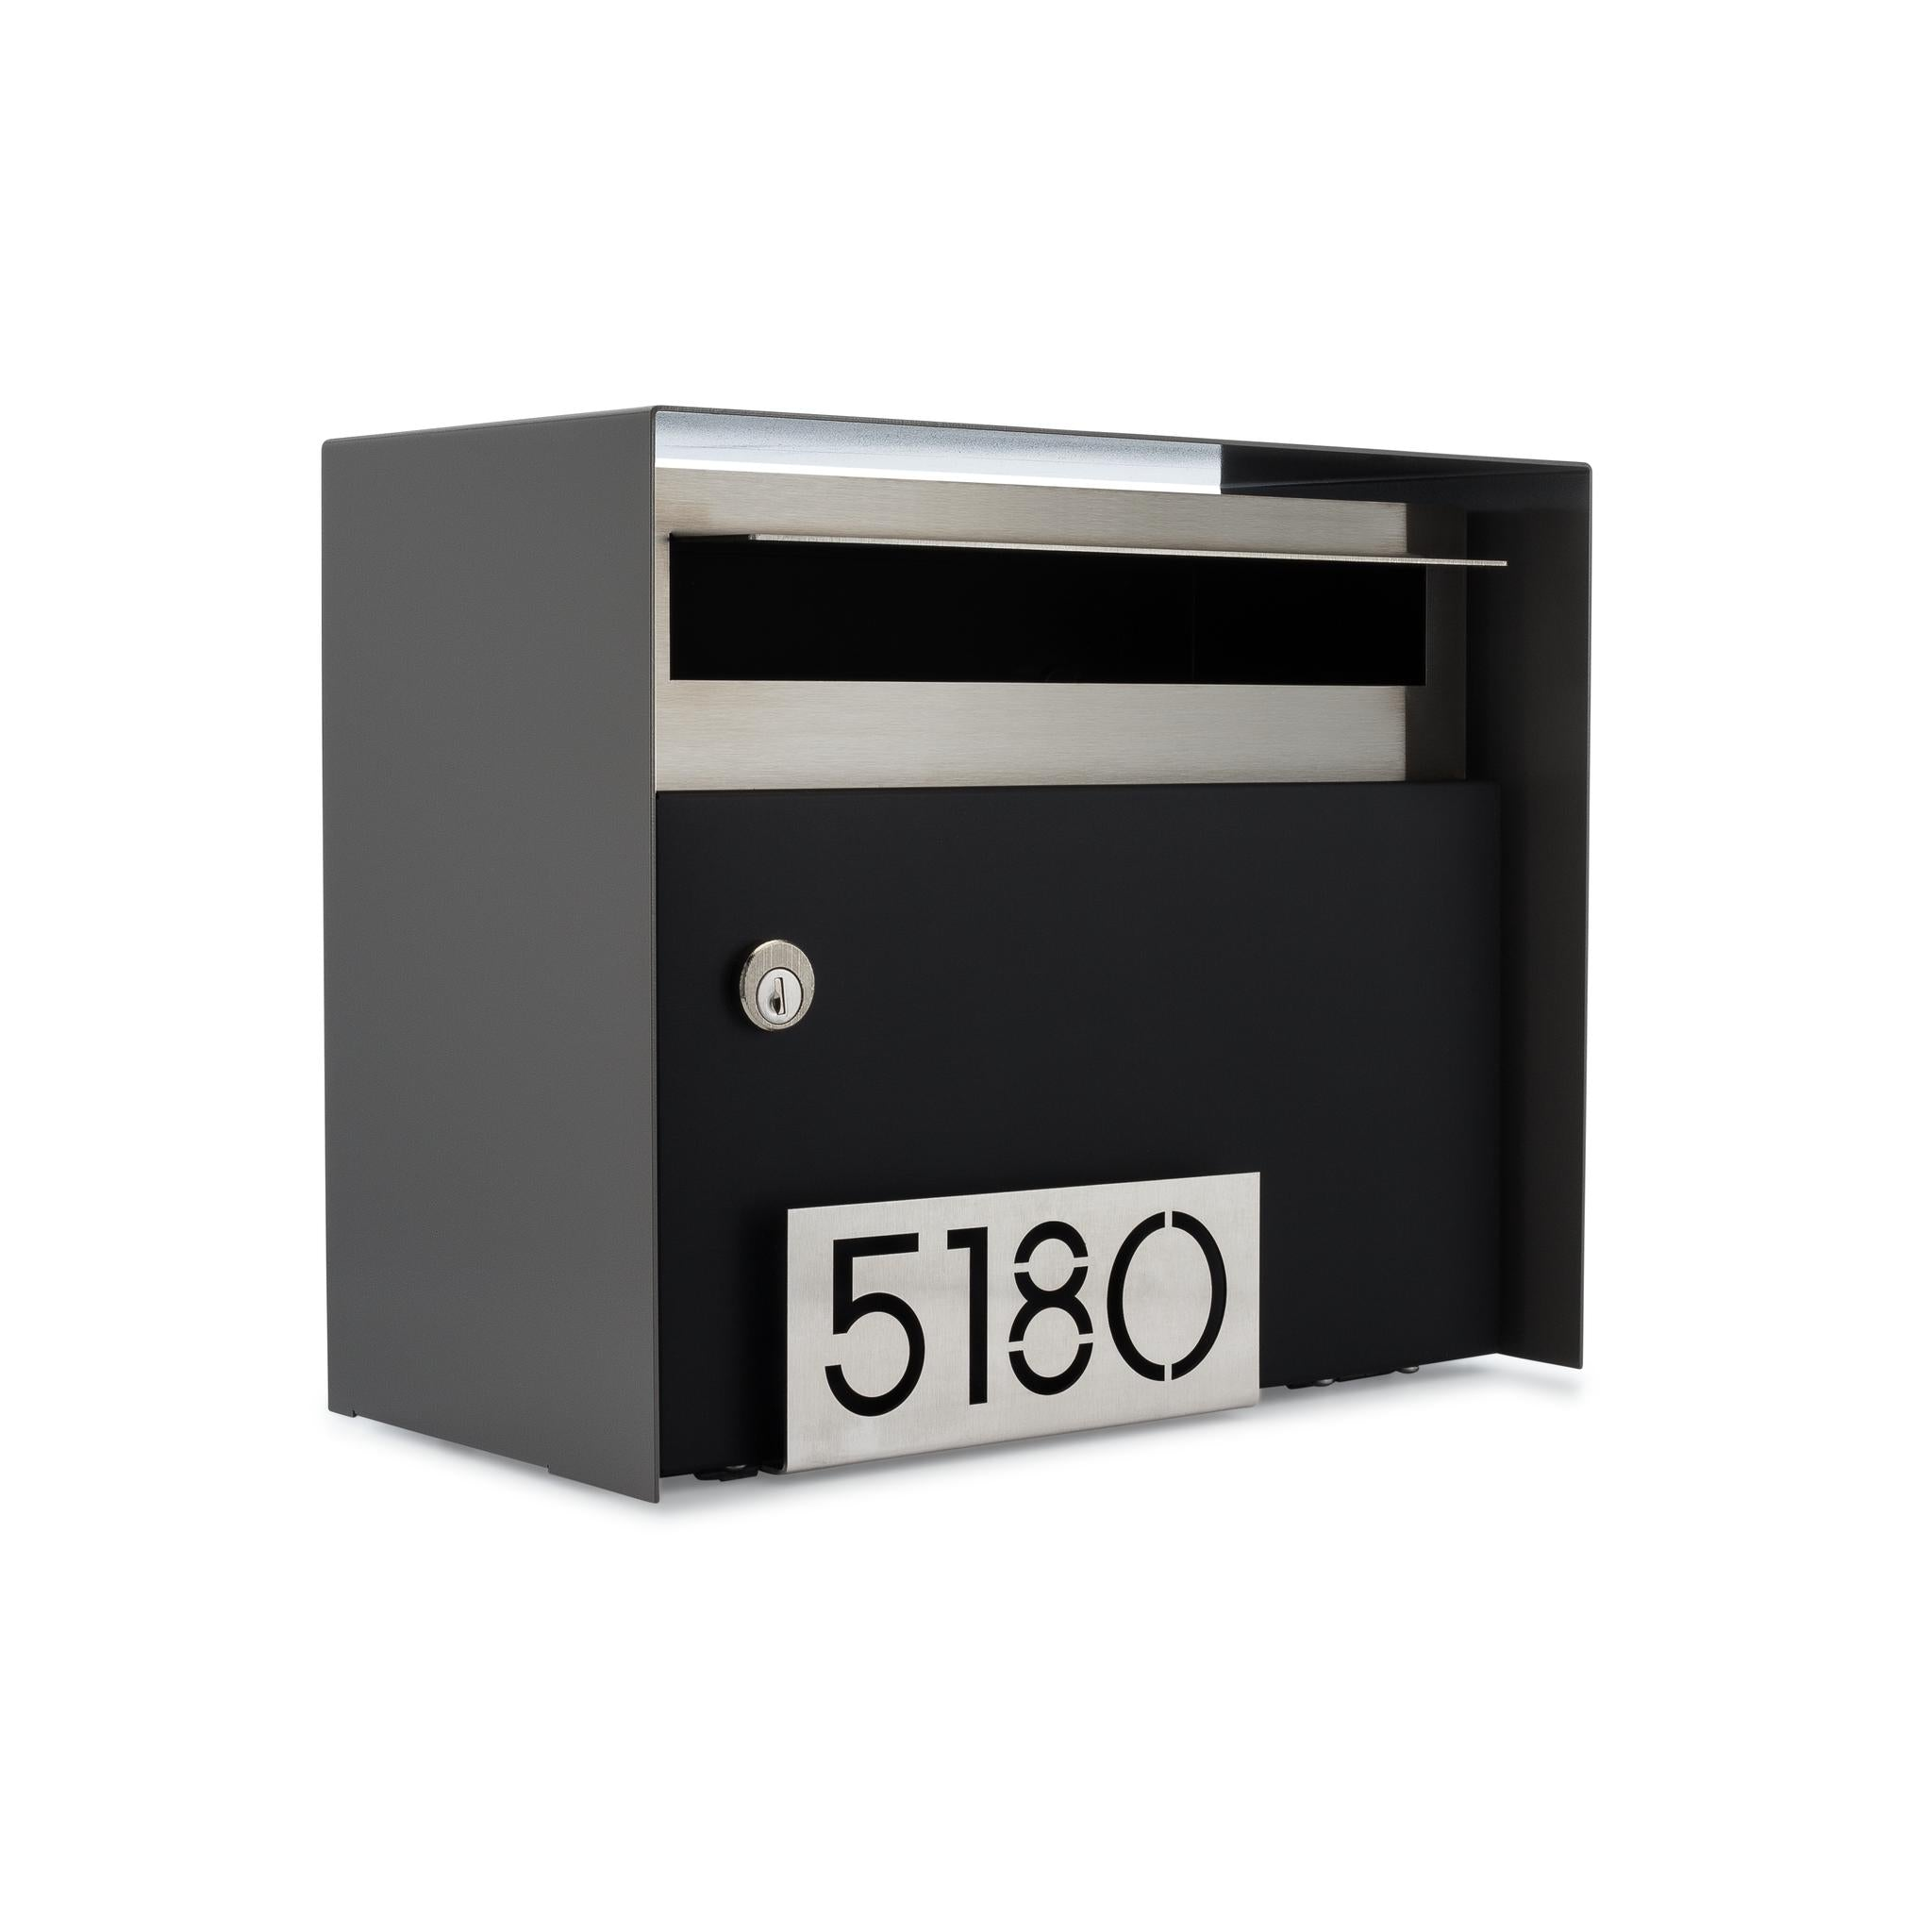 HENRY | WALL MOUNT MAILBOX